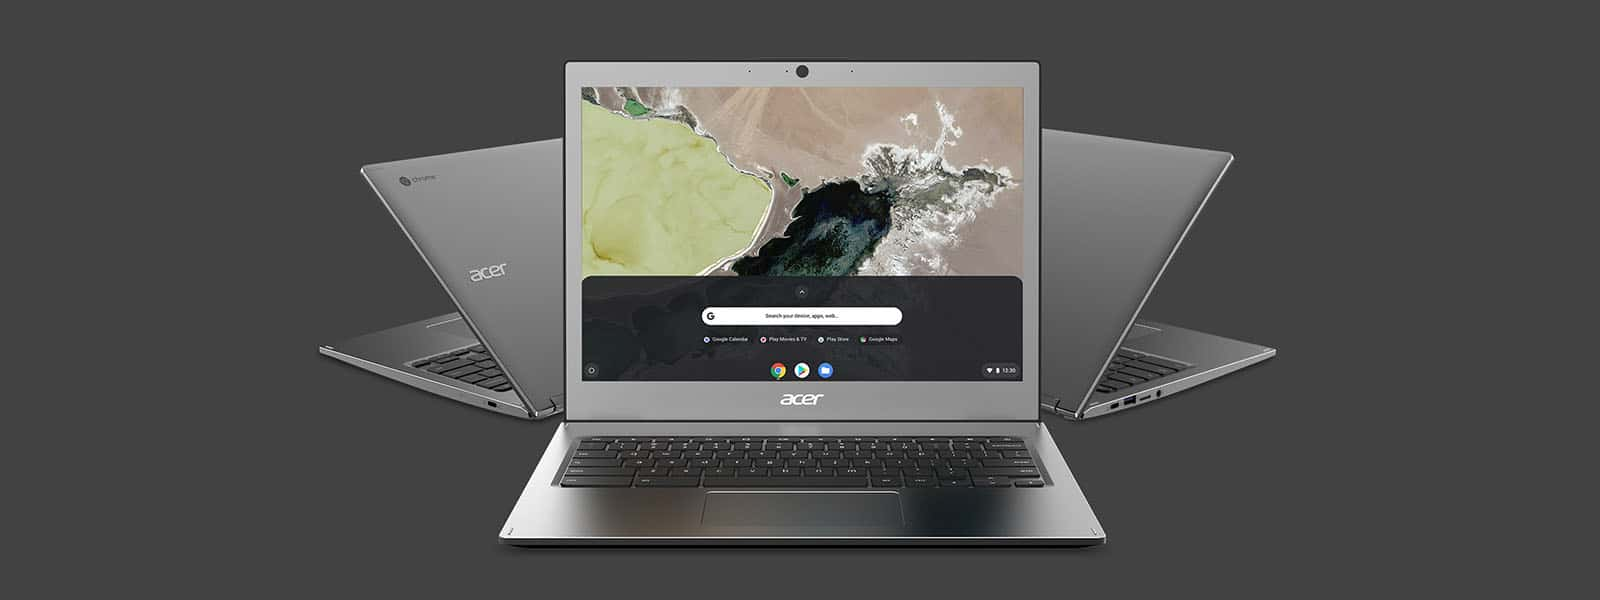 acer chromebook 13 cb713 featured